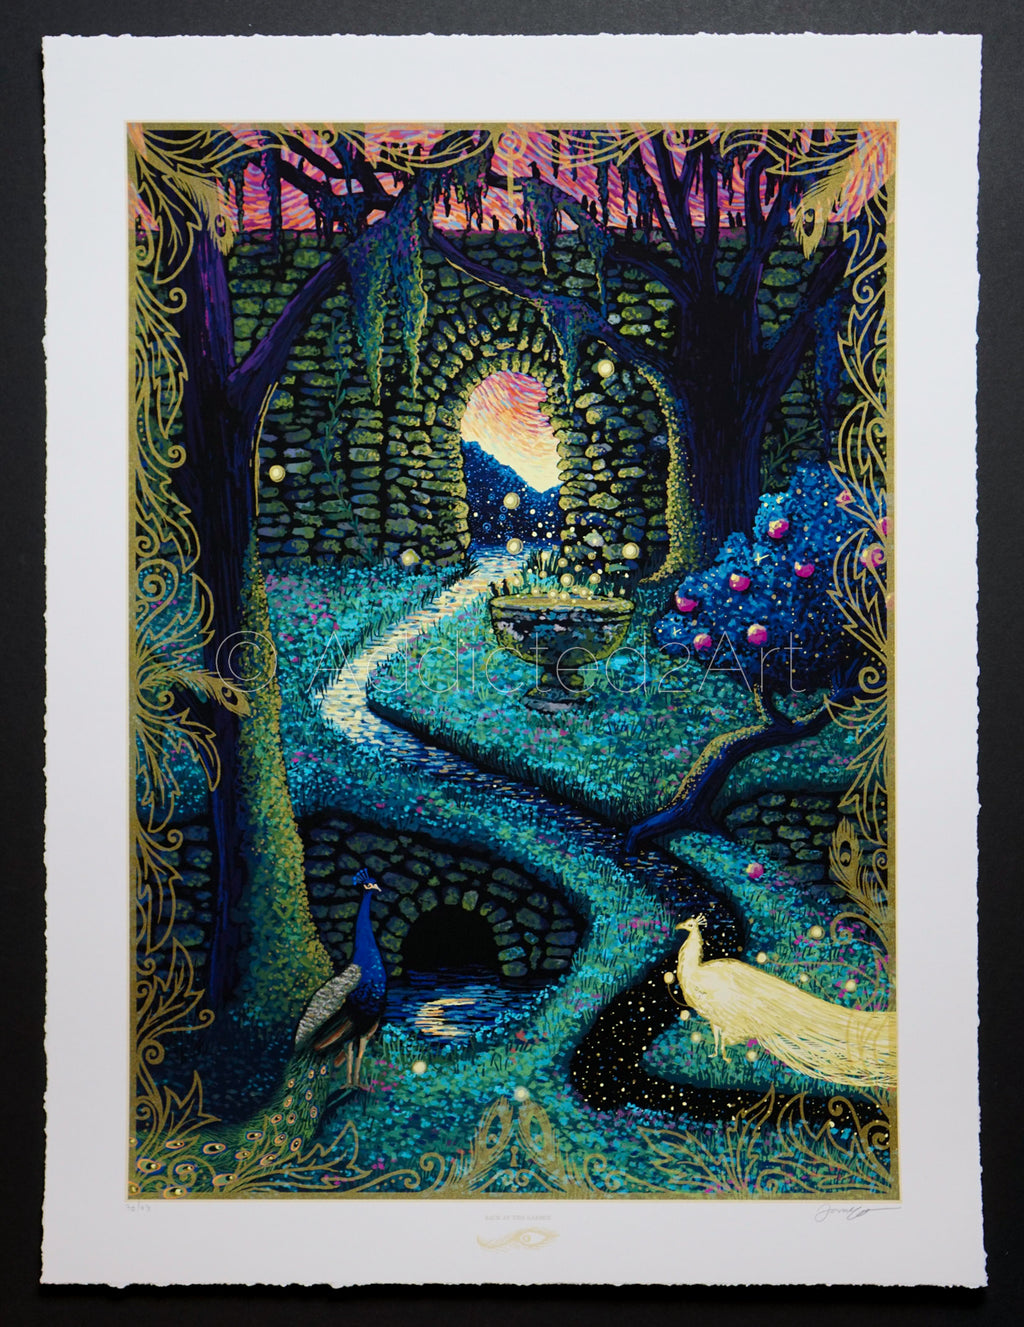 Back in the Garden (Regular Edition) by James R Eads